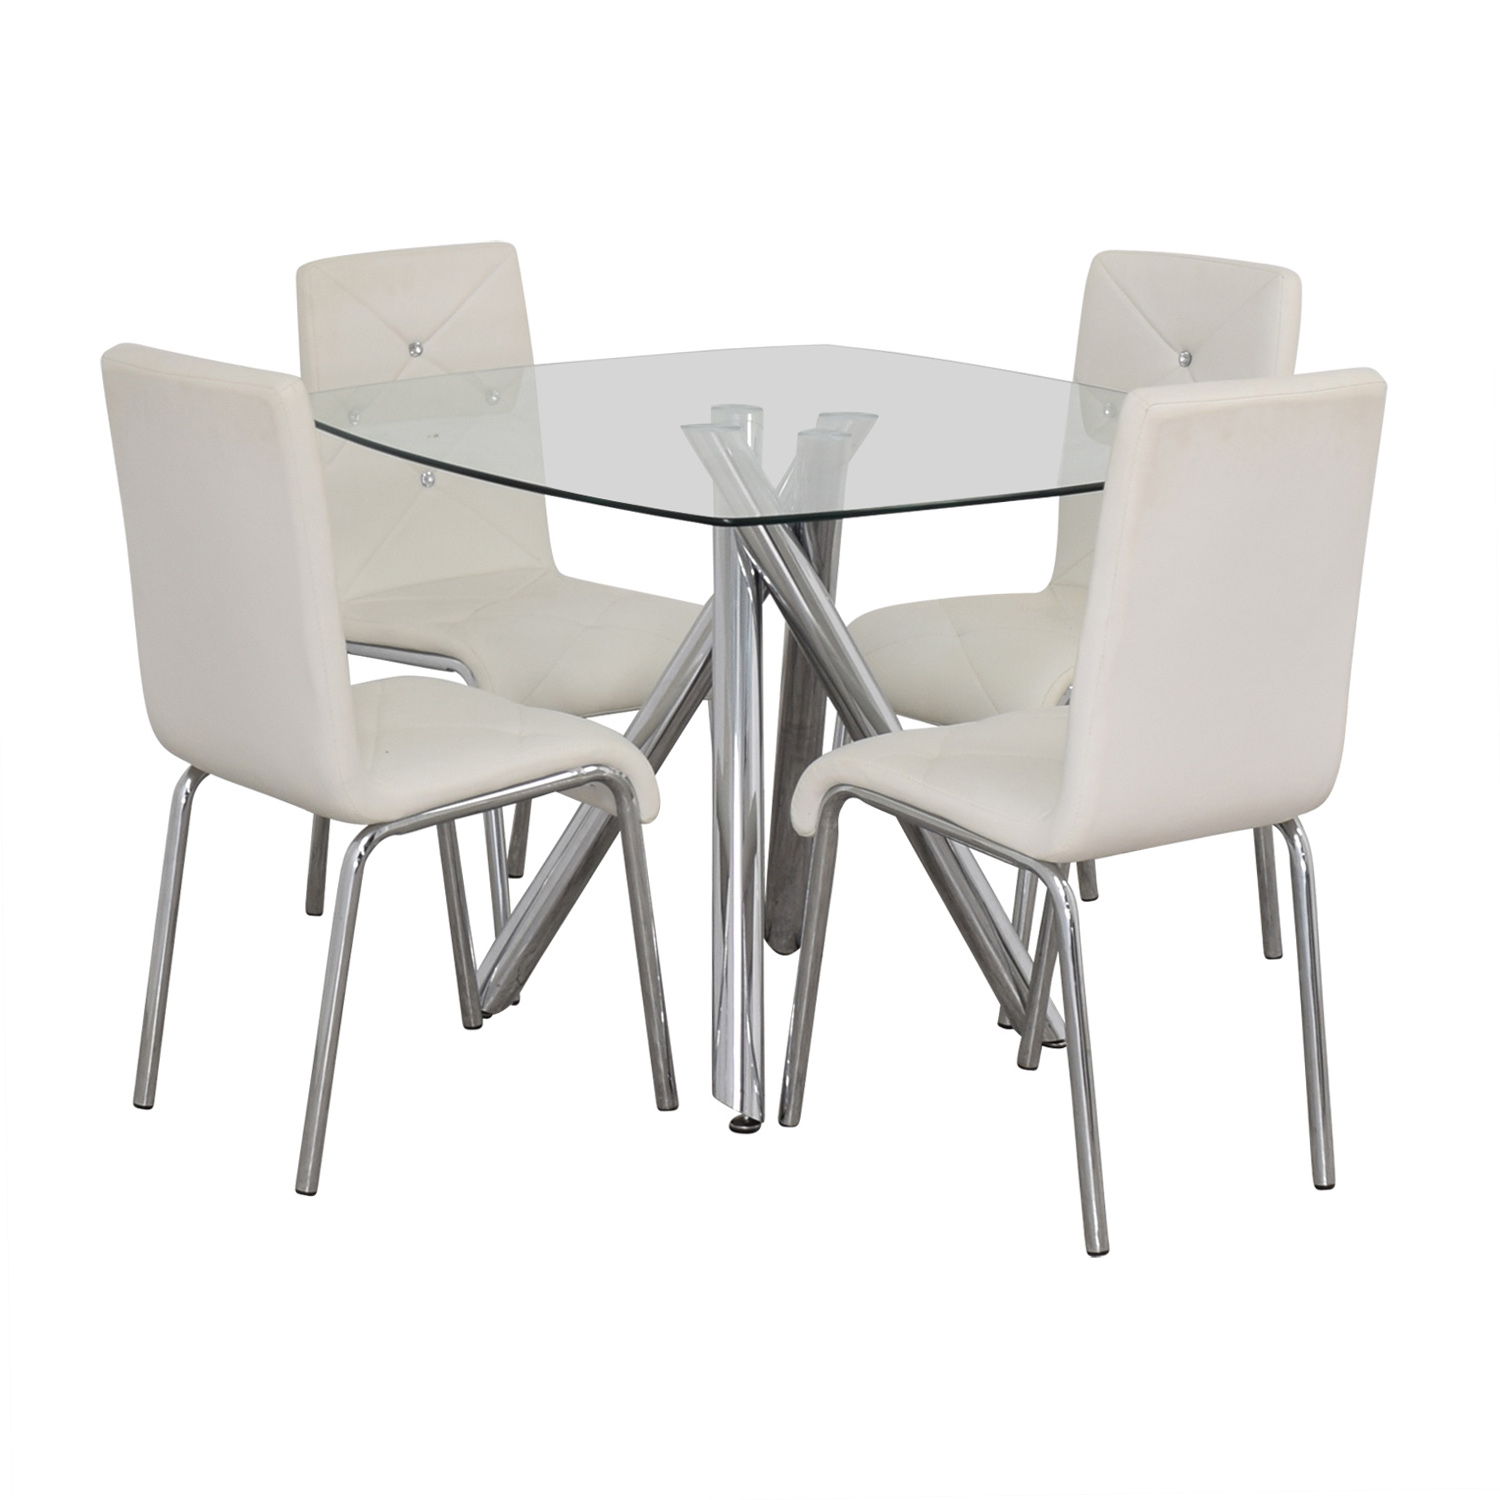 Glass and Chrome Dining Set with White Tufted Chairs price